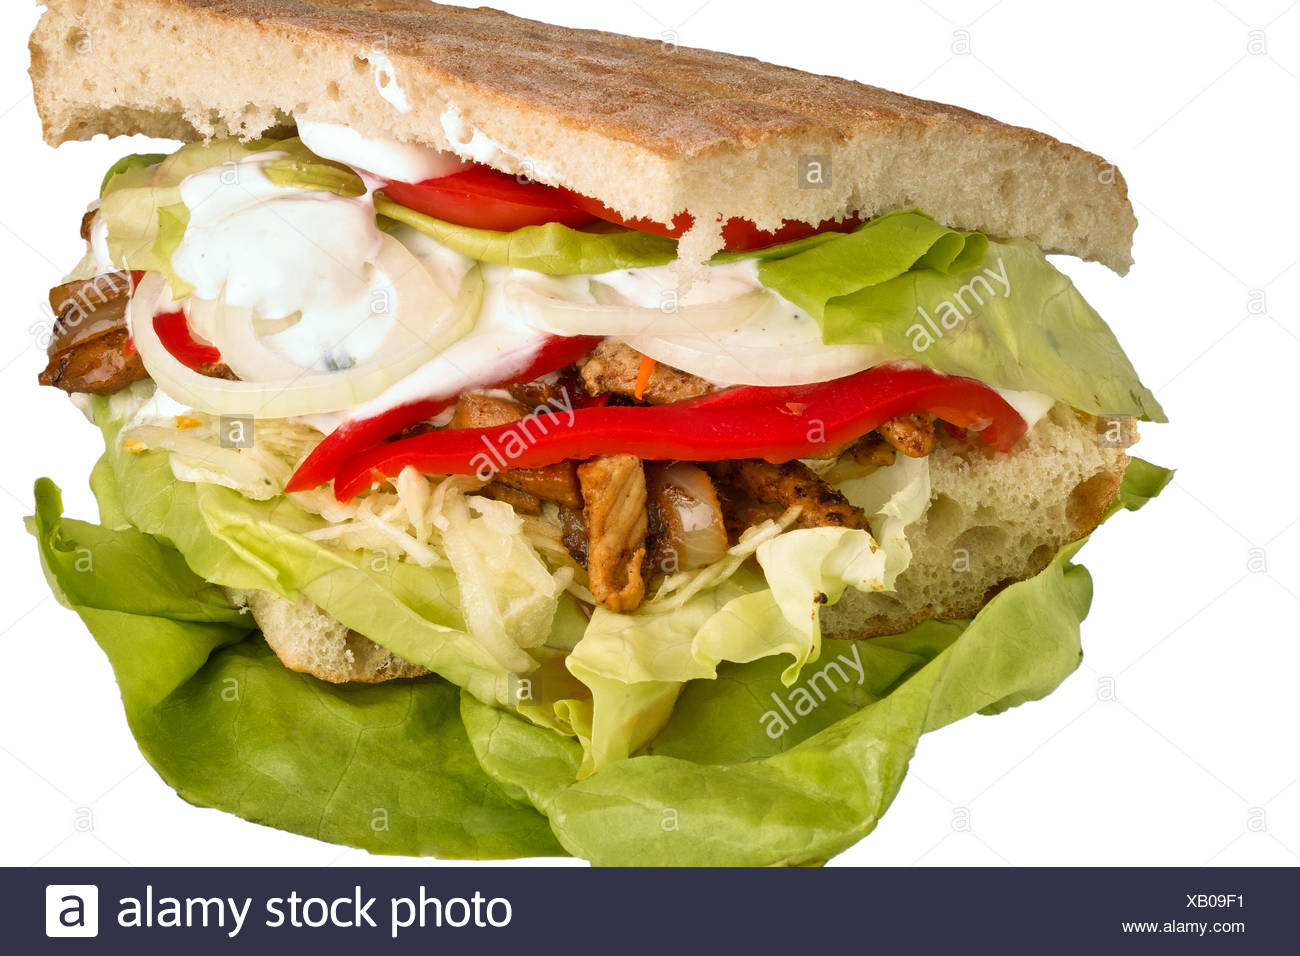 Doner kebab,fast food Photo Stock